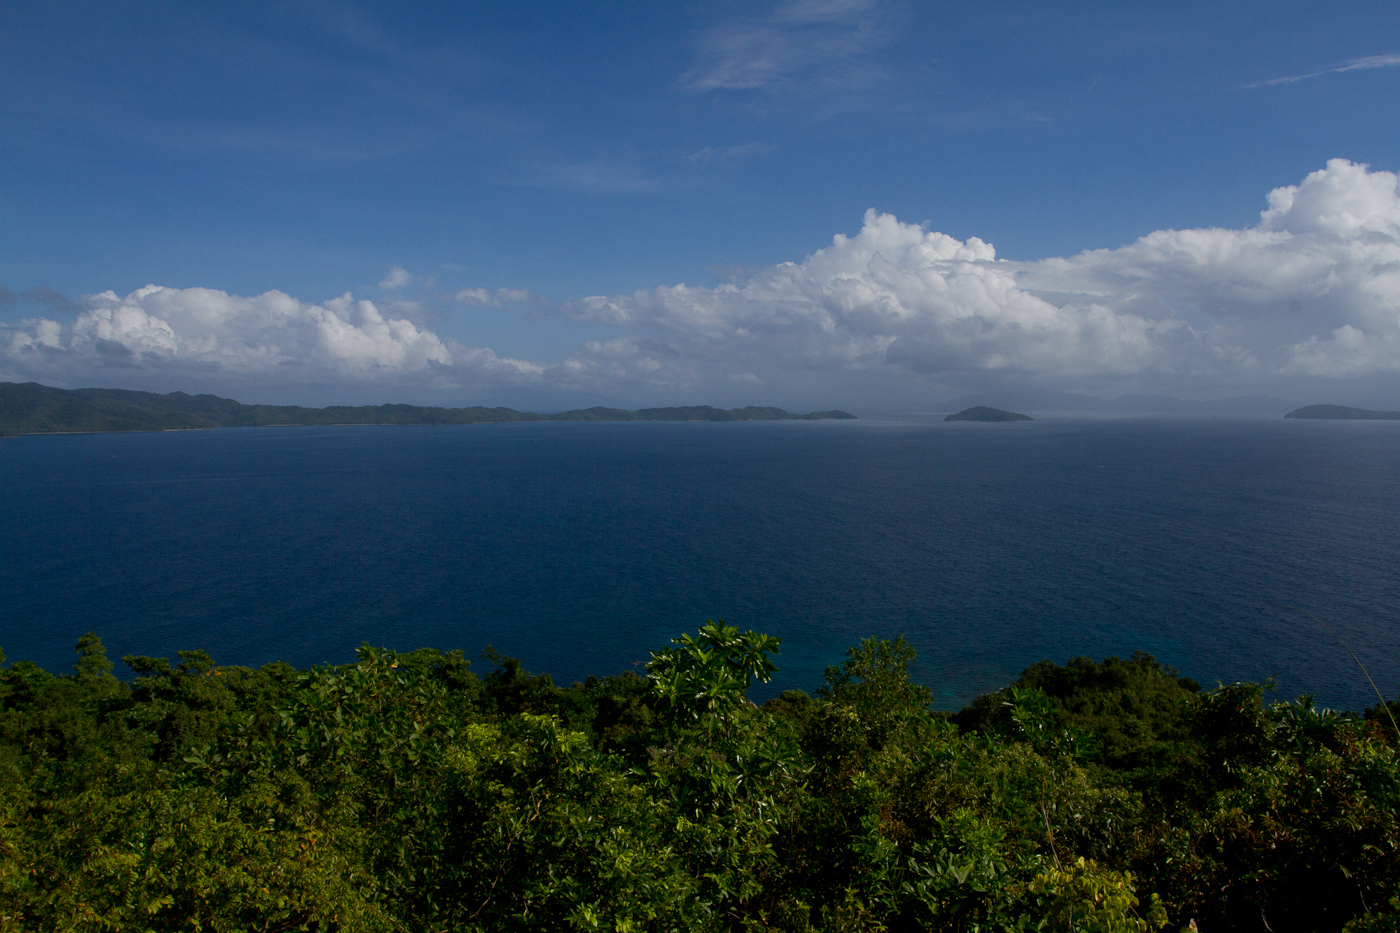 The view from the hill above Blue Cove.